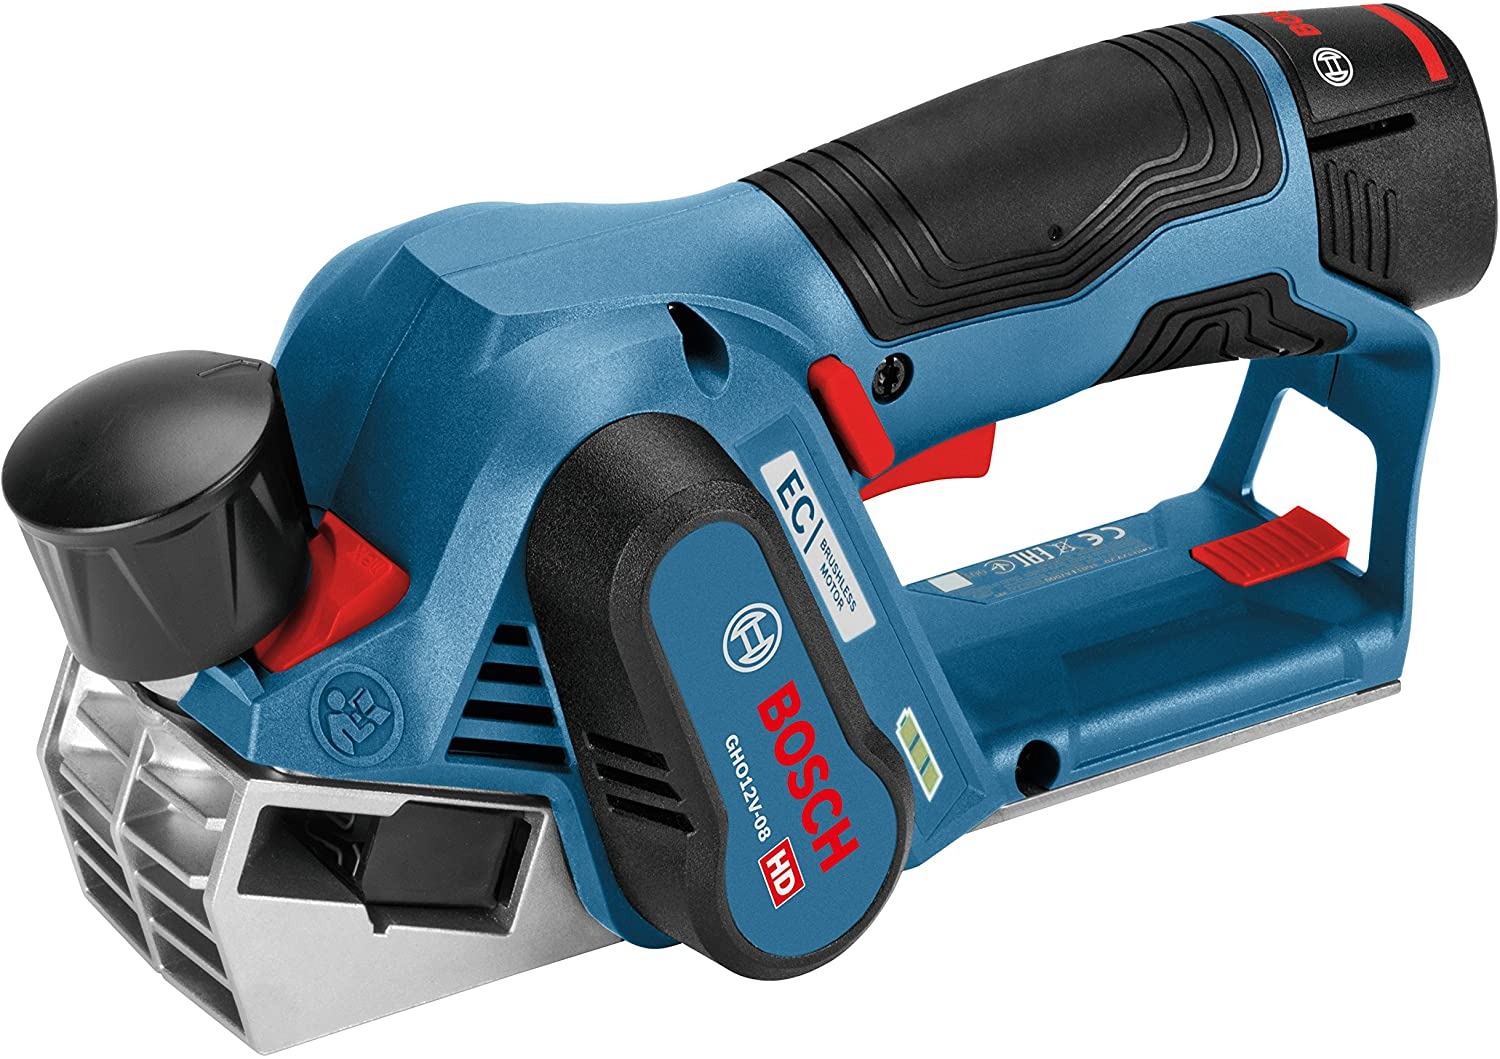 Bosch GHO12V-08N Electric Hand Planers product image 1